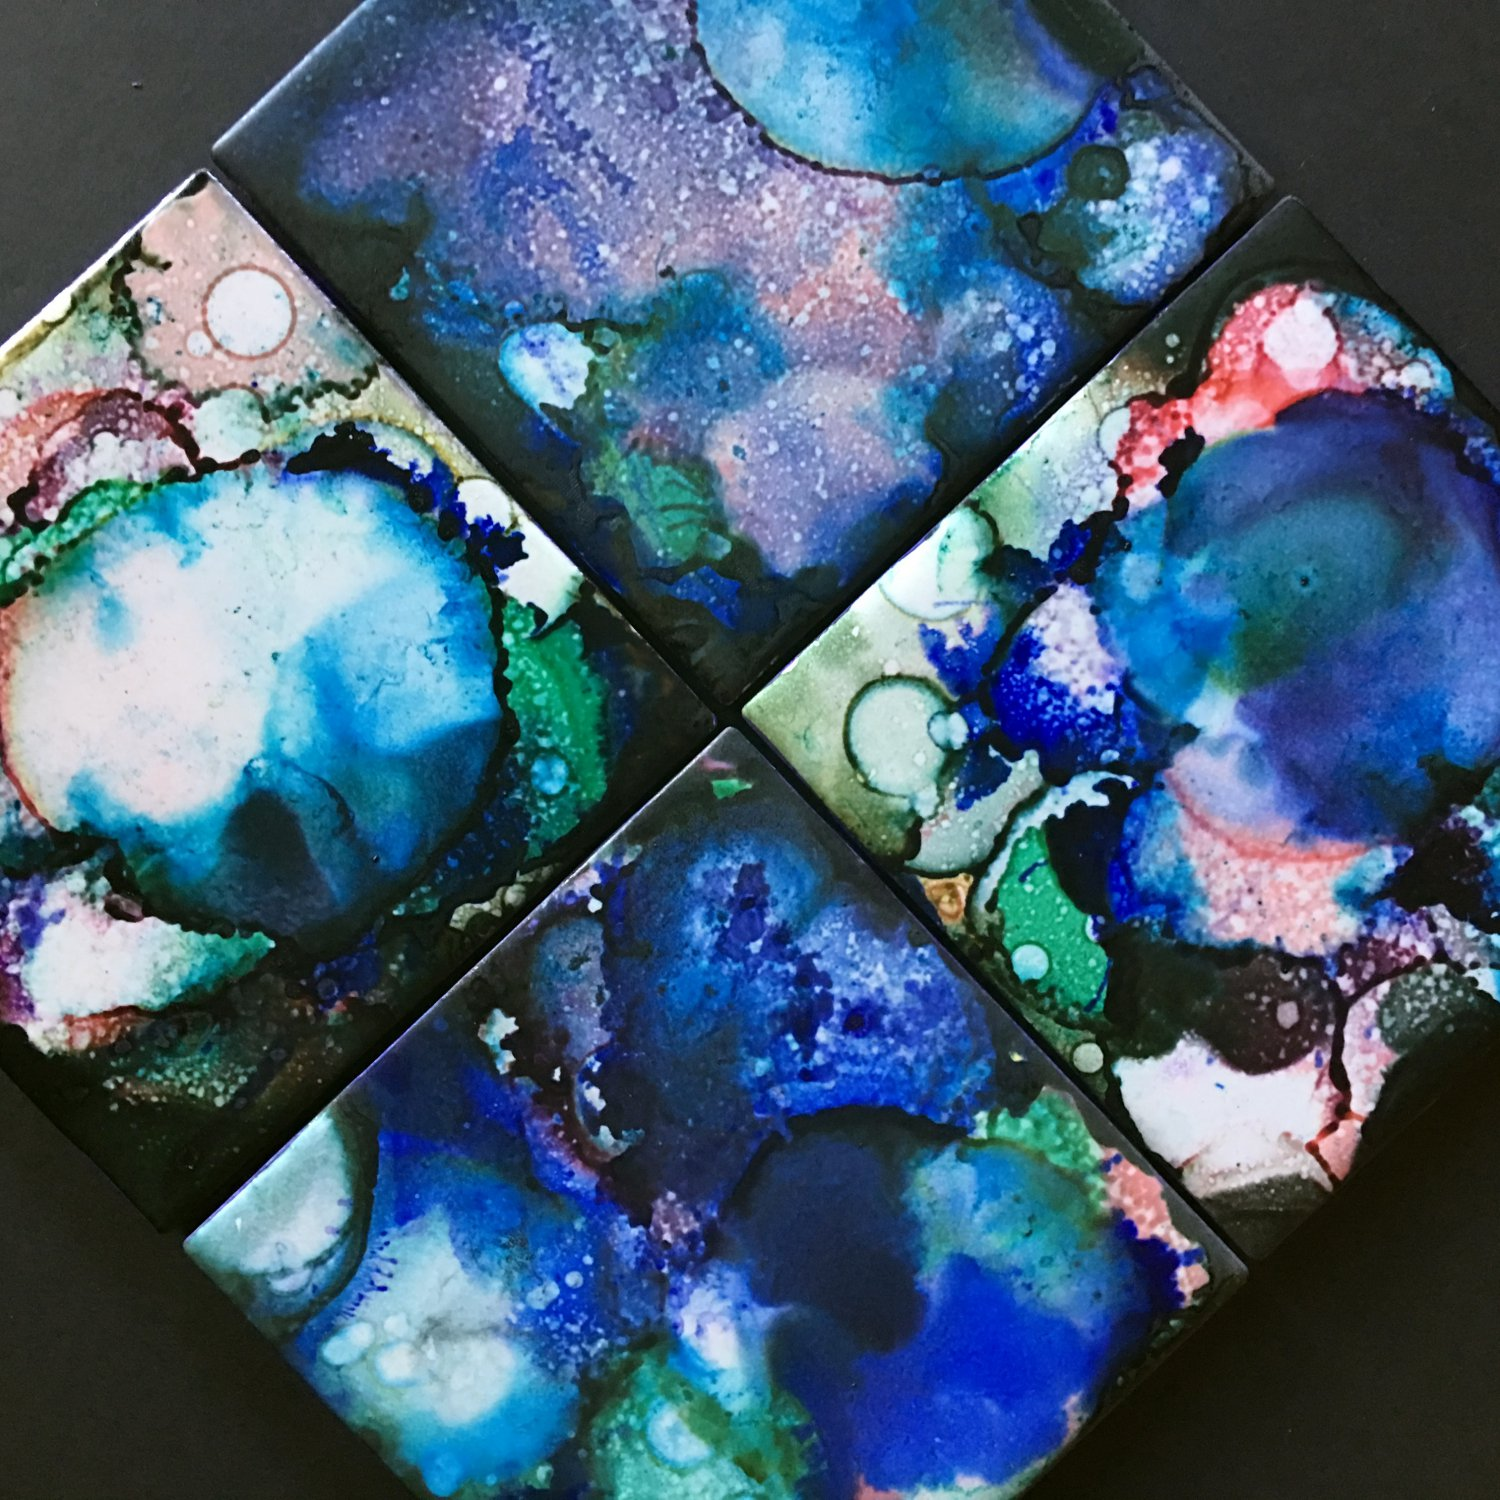 Set of 4 Alcohol Ink Ceramic Tile Coasters